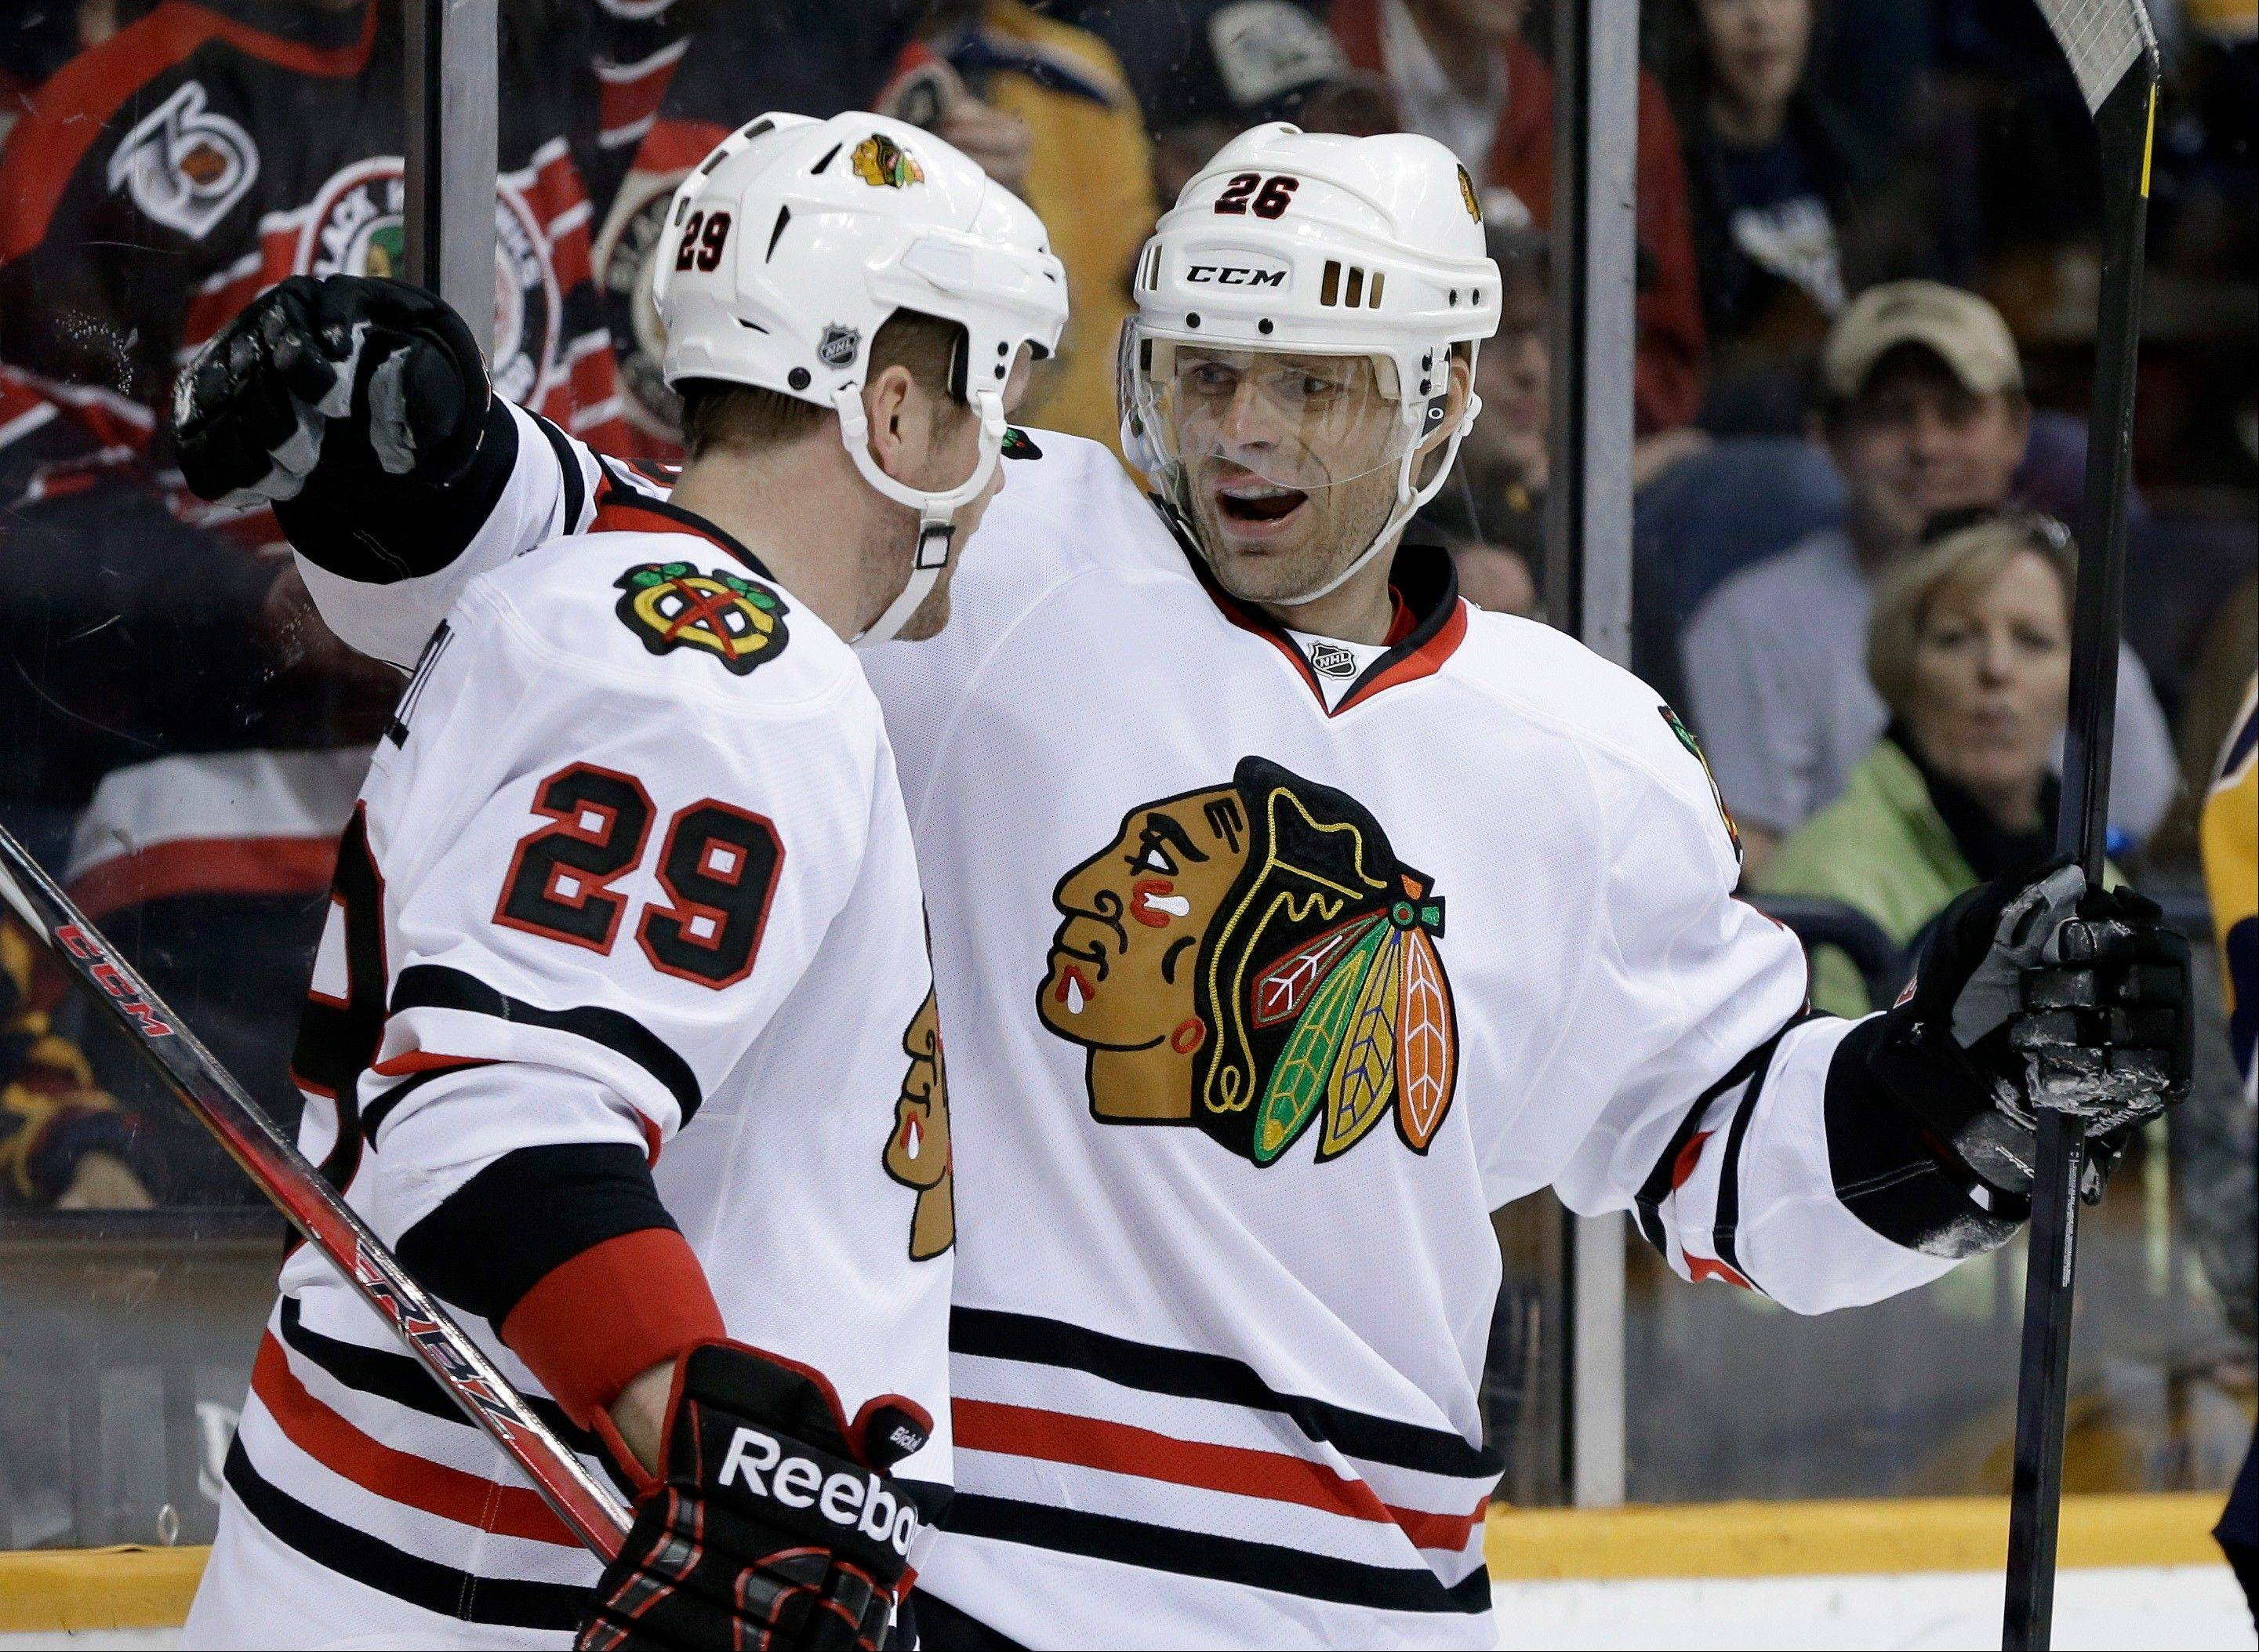 Blackhawks left wing Bryan Bickell is congratulated by Michal Handzus after Bickell scored on a Handzus assist for the only goal in Saturday's victory against the Predators at Nashville.